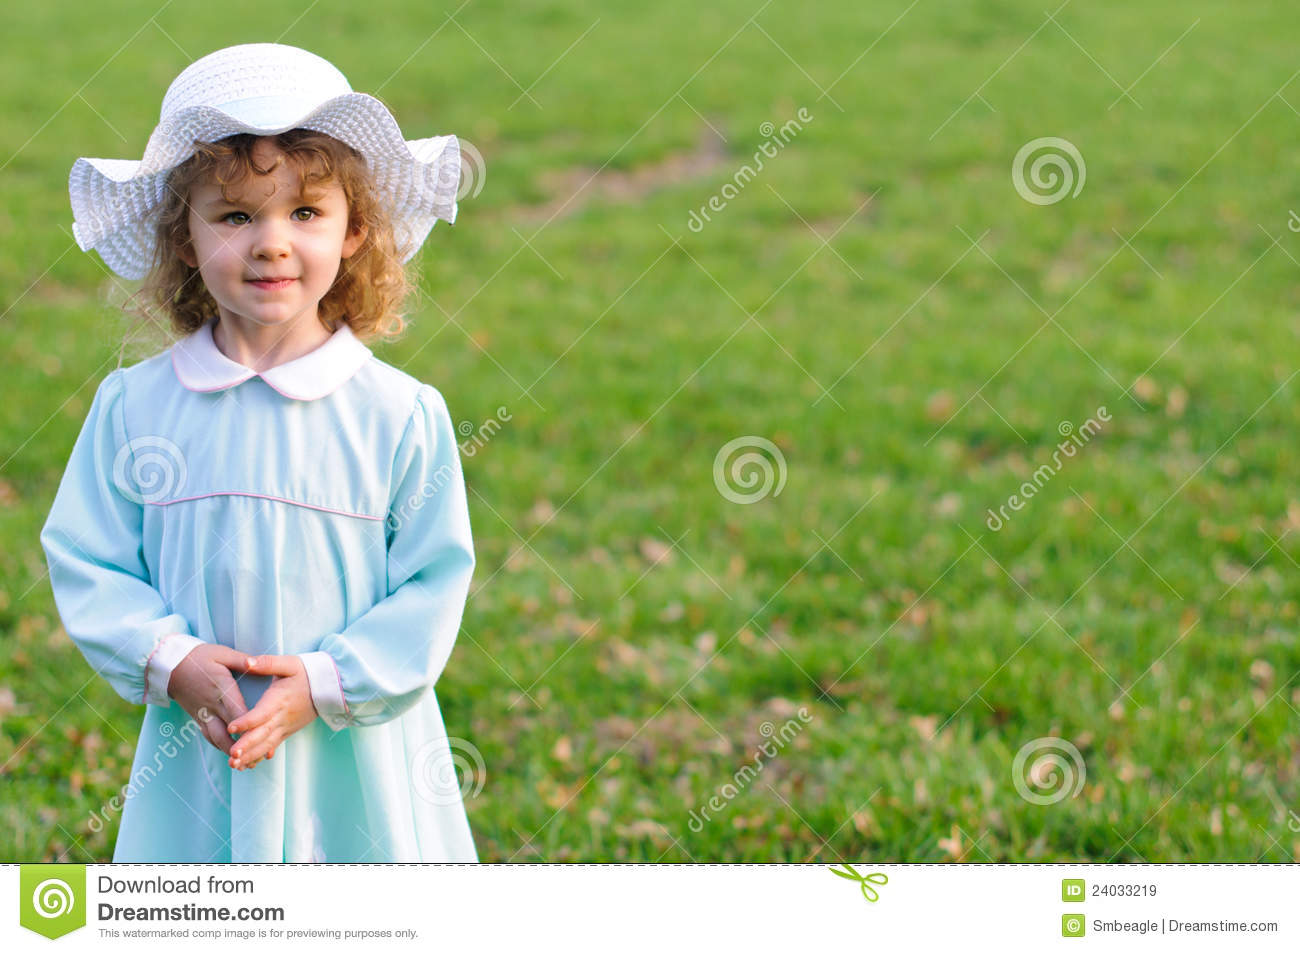 Cute Girl In Easter Dress And Bonnet Royalty Free Stock Images ...